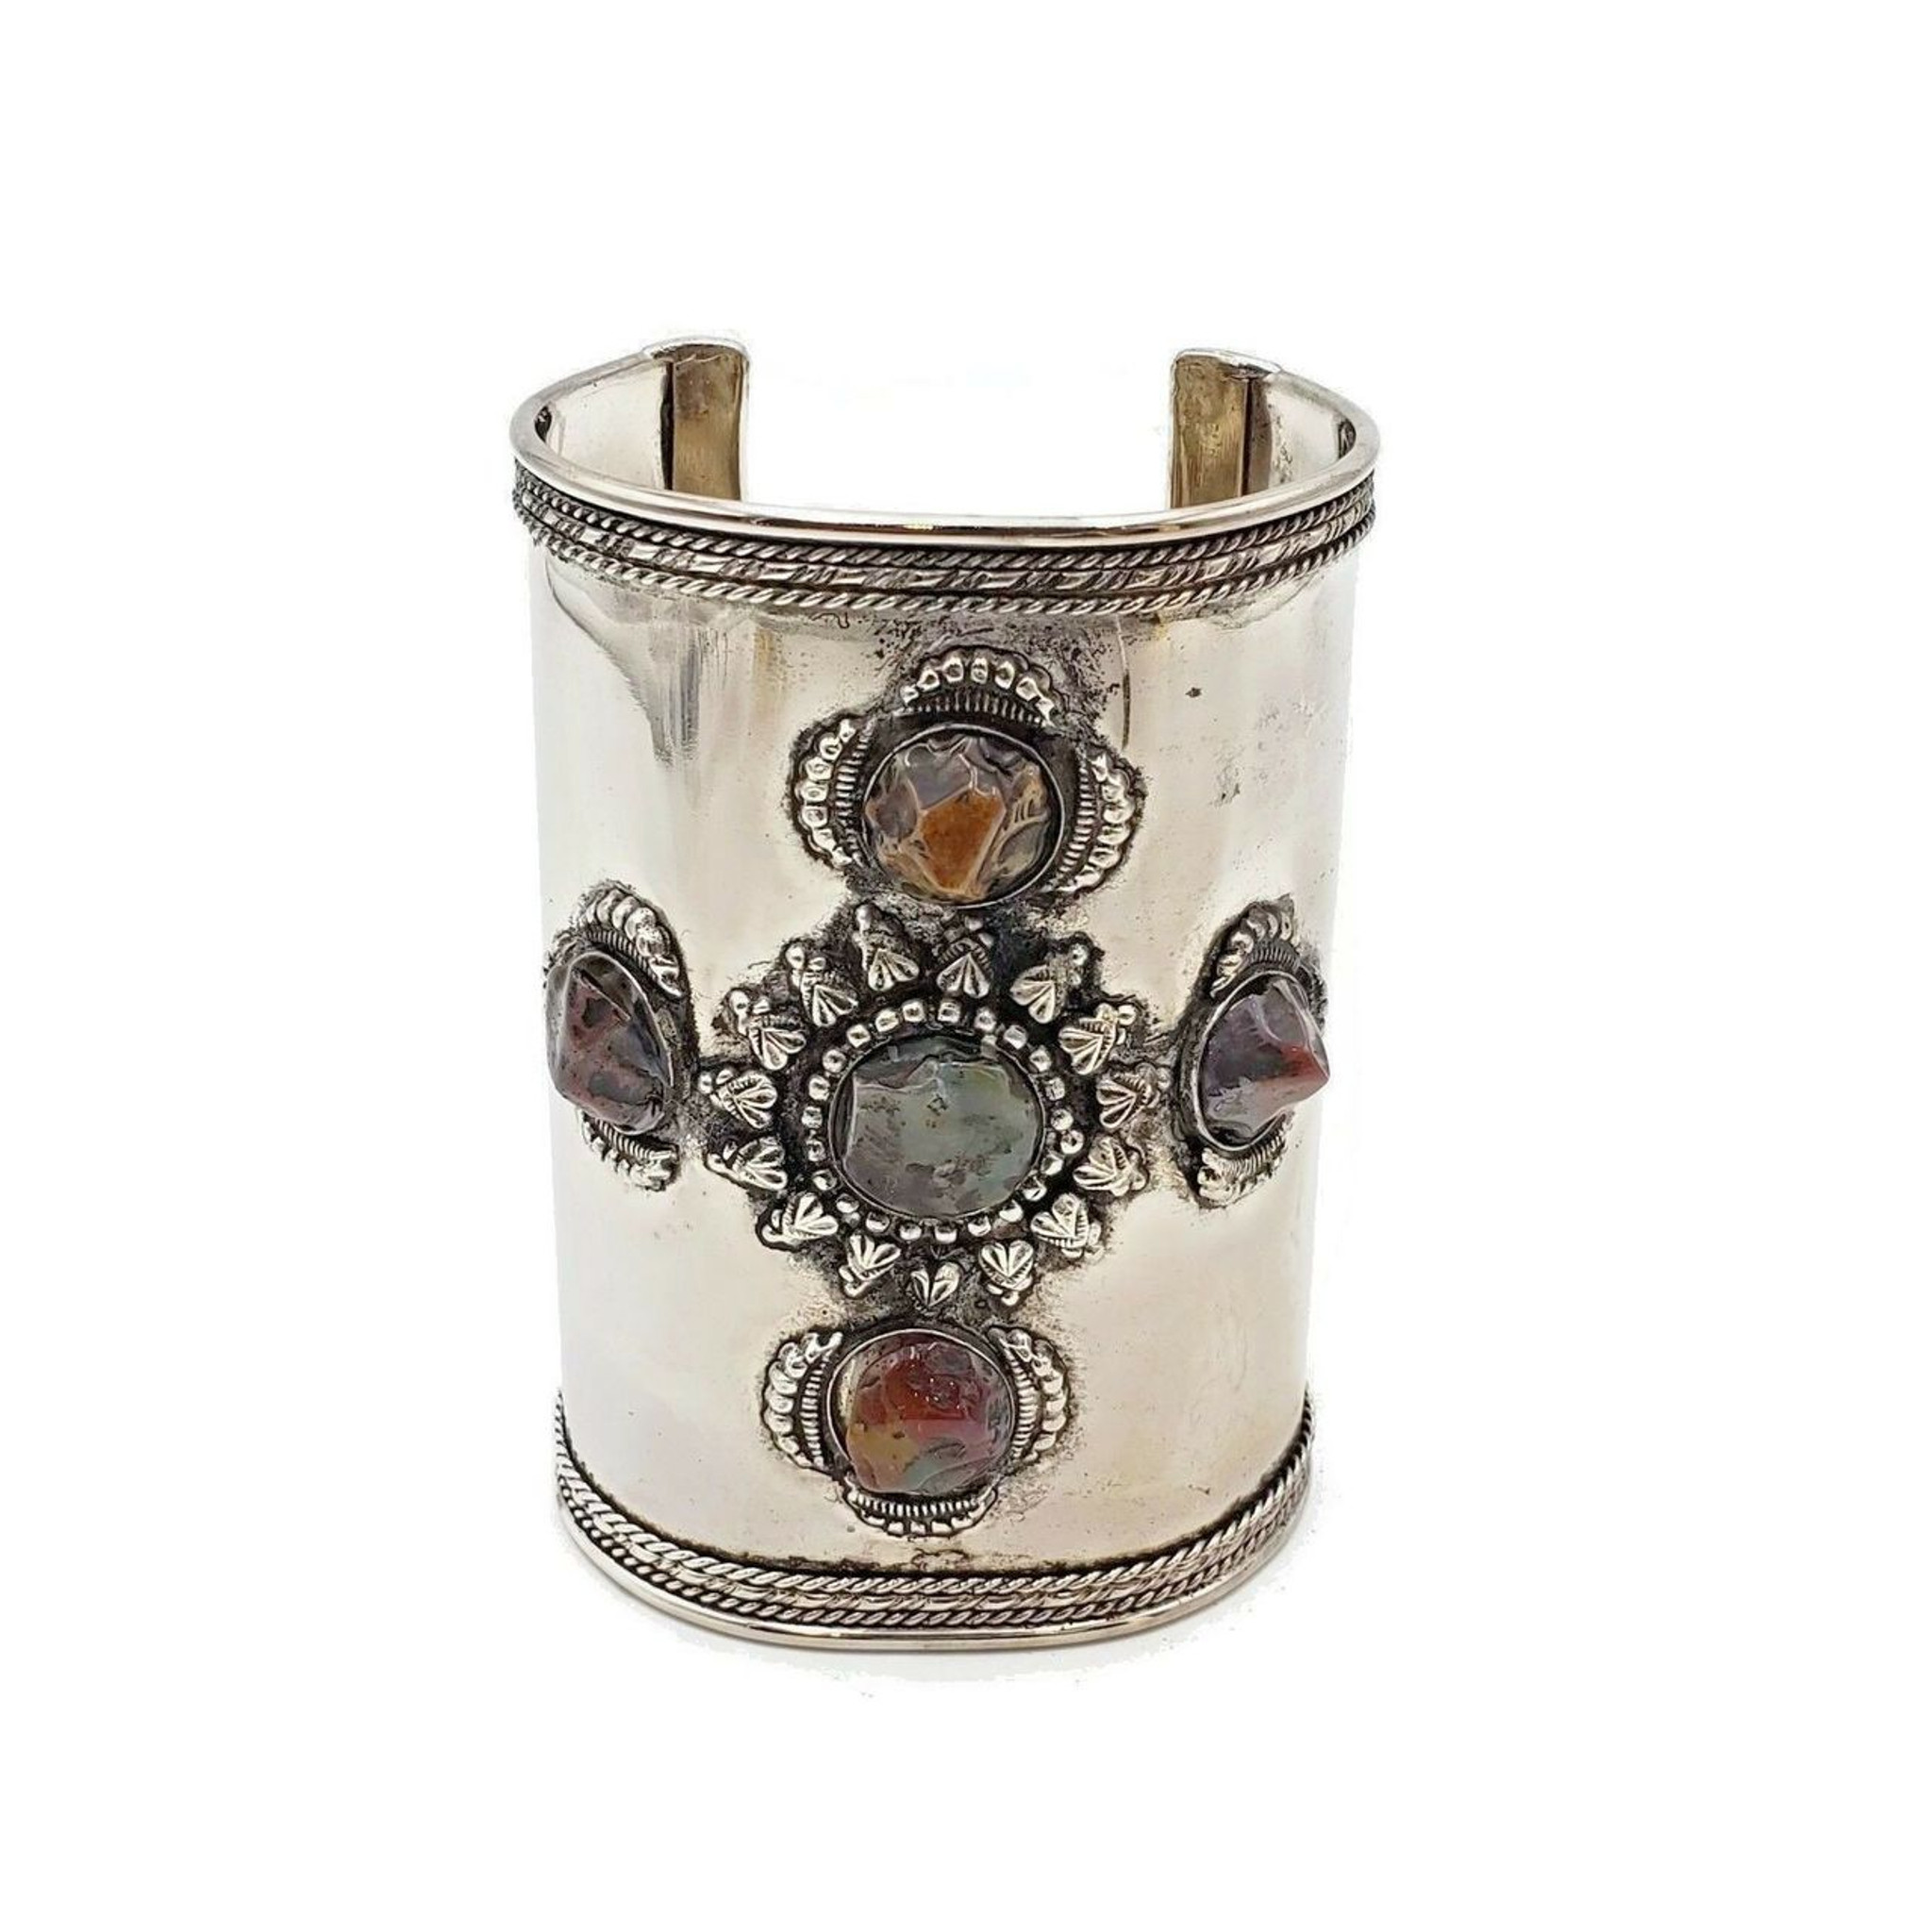 Cardinal Brass Cuff with Natural Agate Stones - 4""